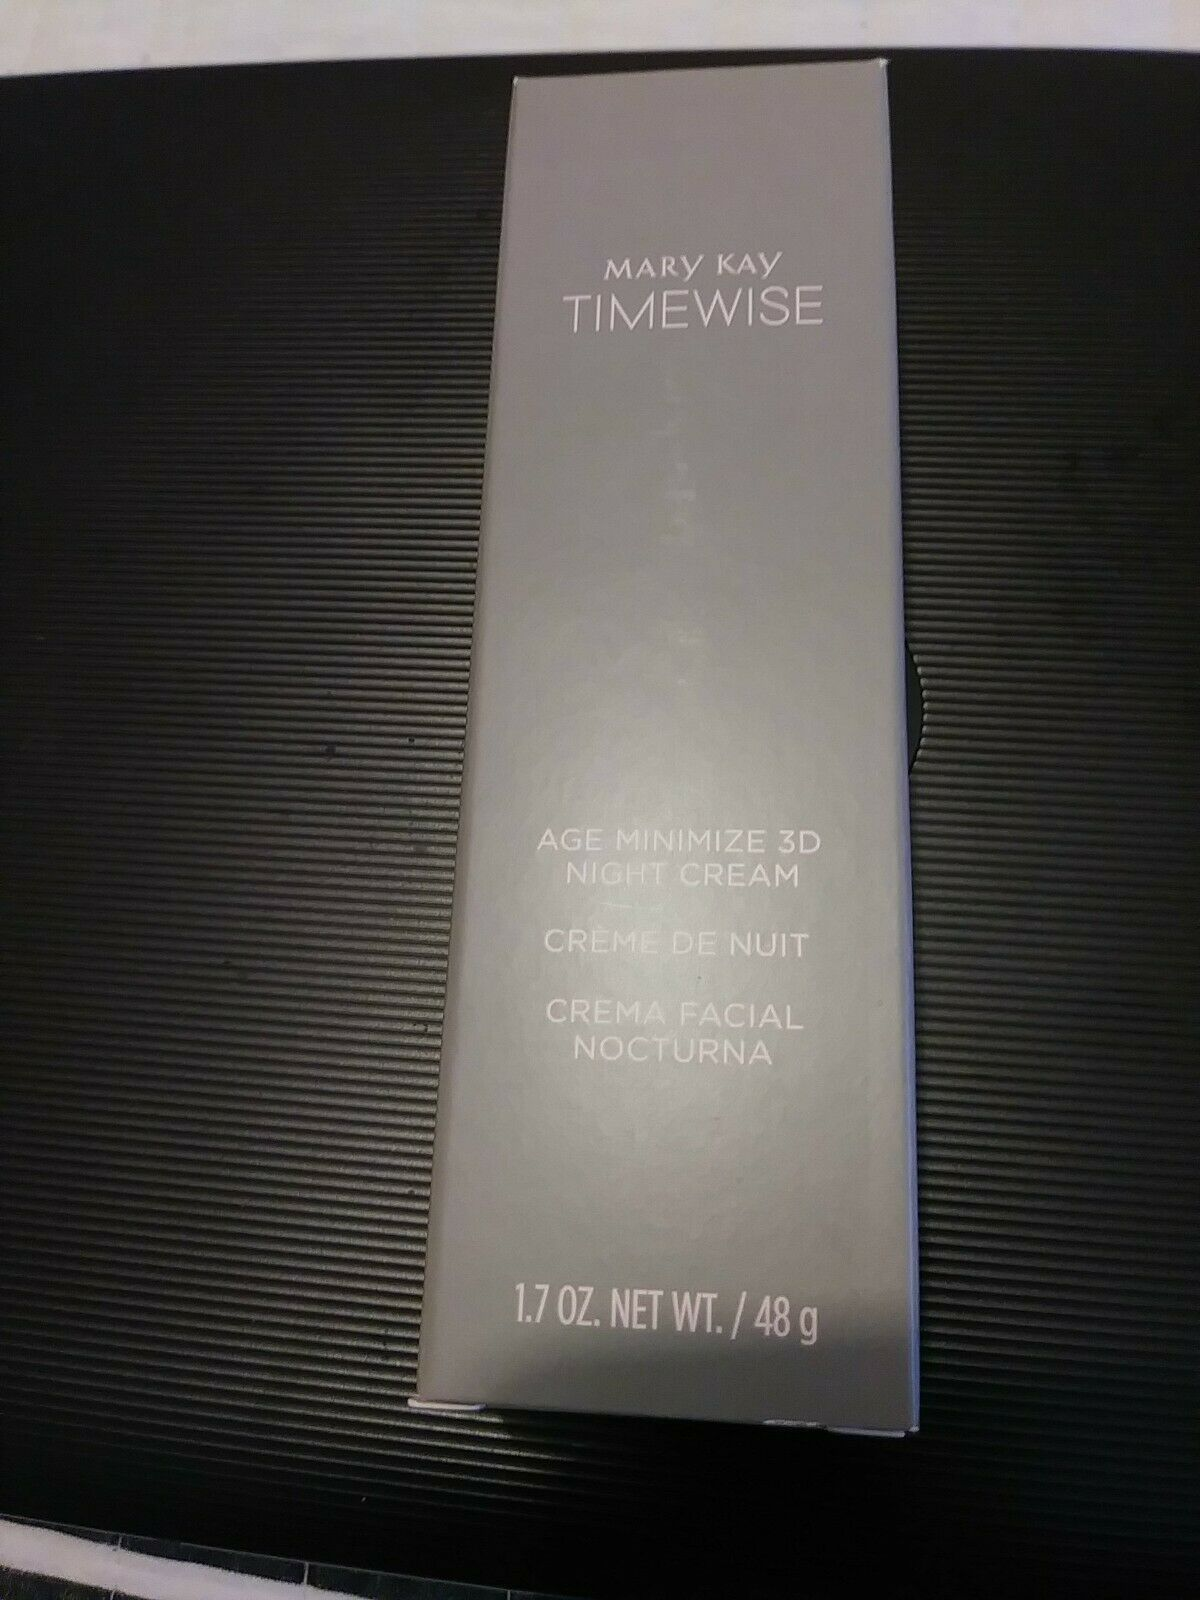 Primary image for Mary Kay Timewise 089007 Age Minimize 3D Night Cream - 1.7oz